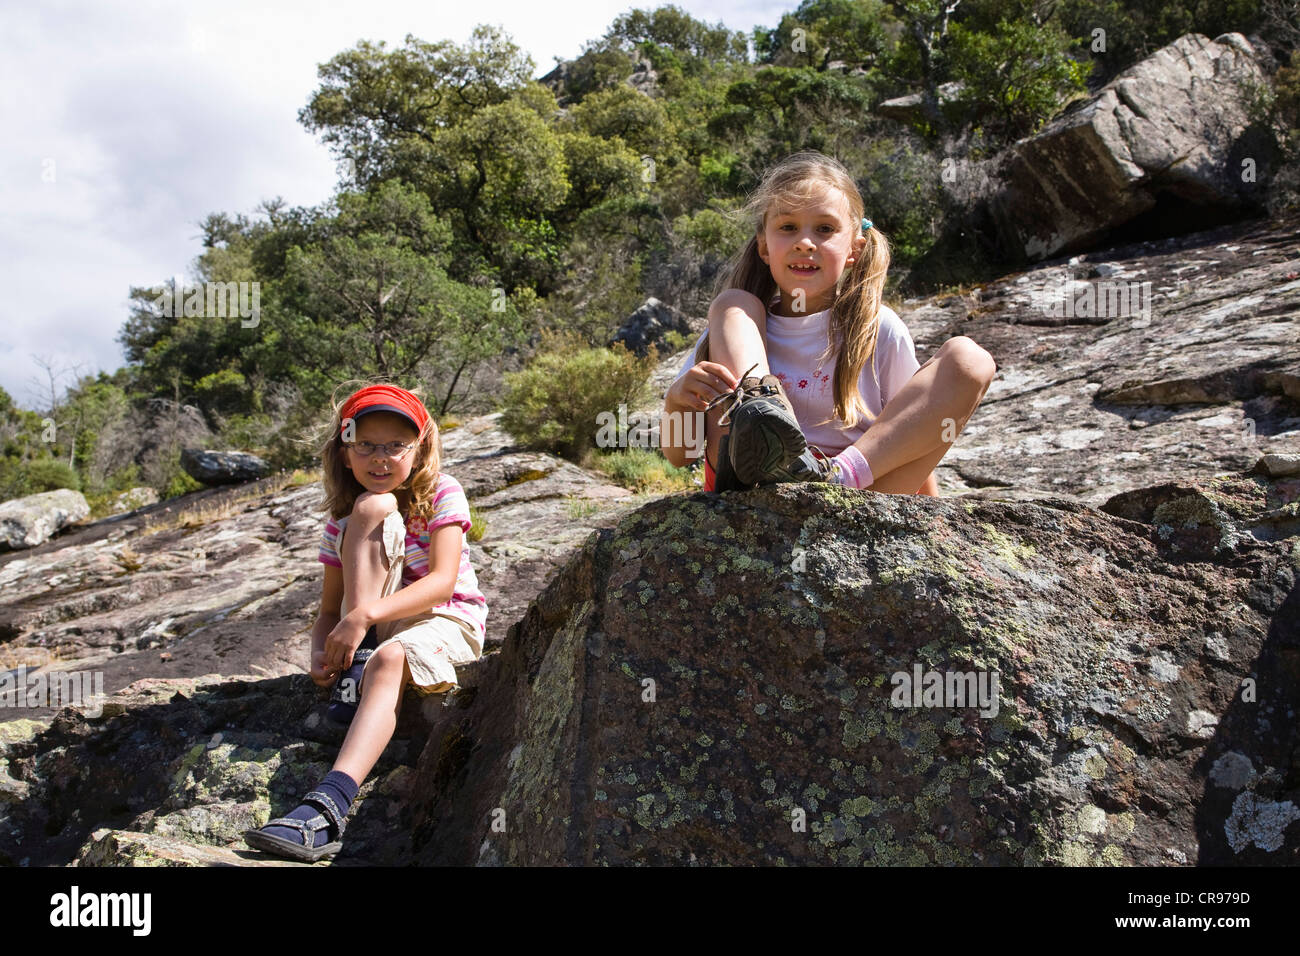 7-year-old girls in the valley of Figarella river, Foret de Bonifatu, Corsica, France, Europe - Stock Image